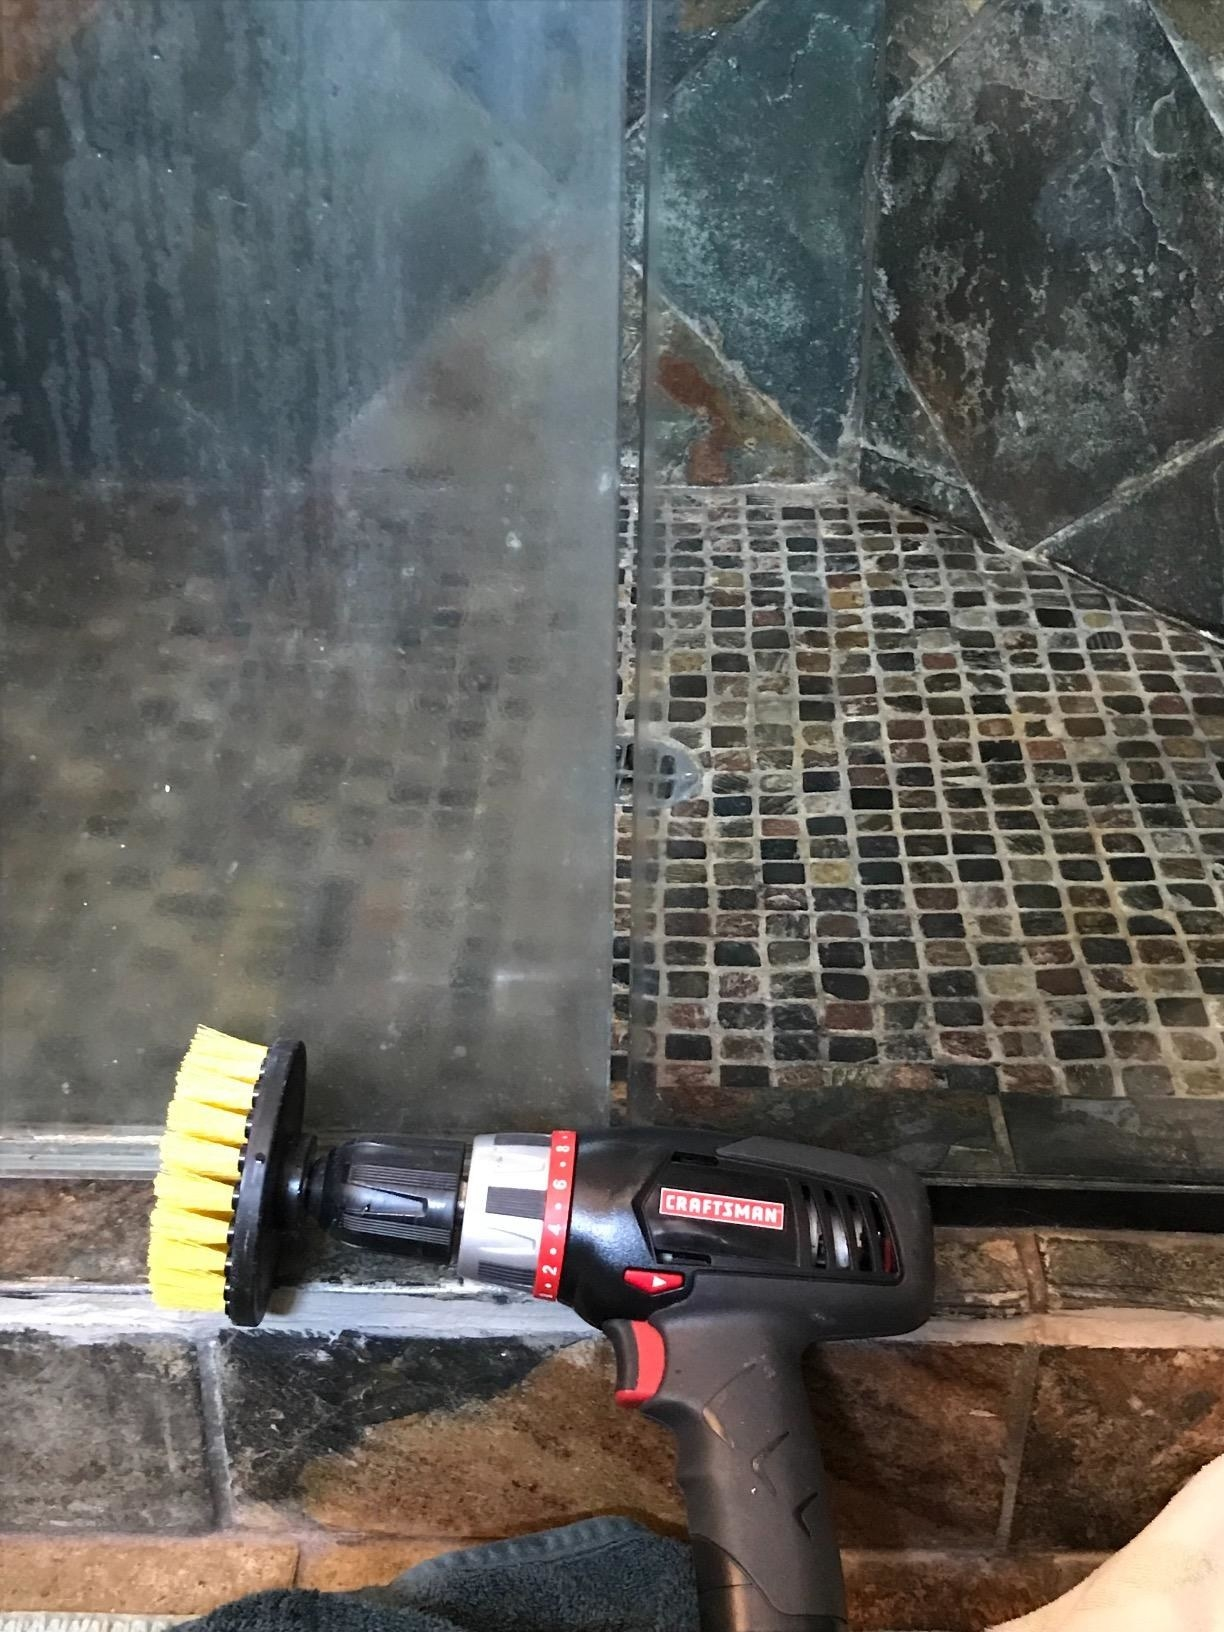 Reviewer drill with brush attachment; half the glass shower door is opaque white with mineral stains, the other half is perfectly clear